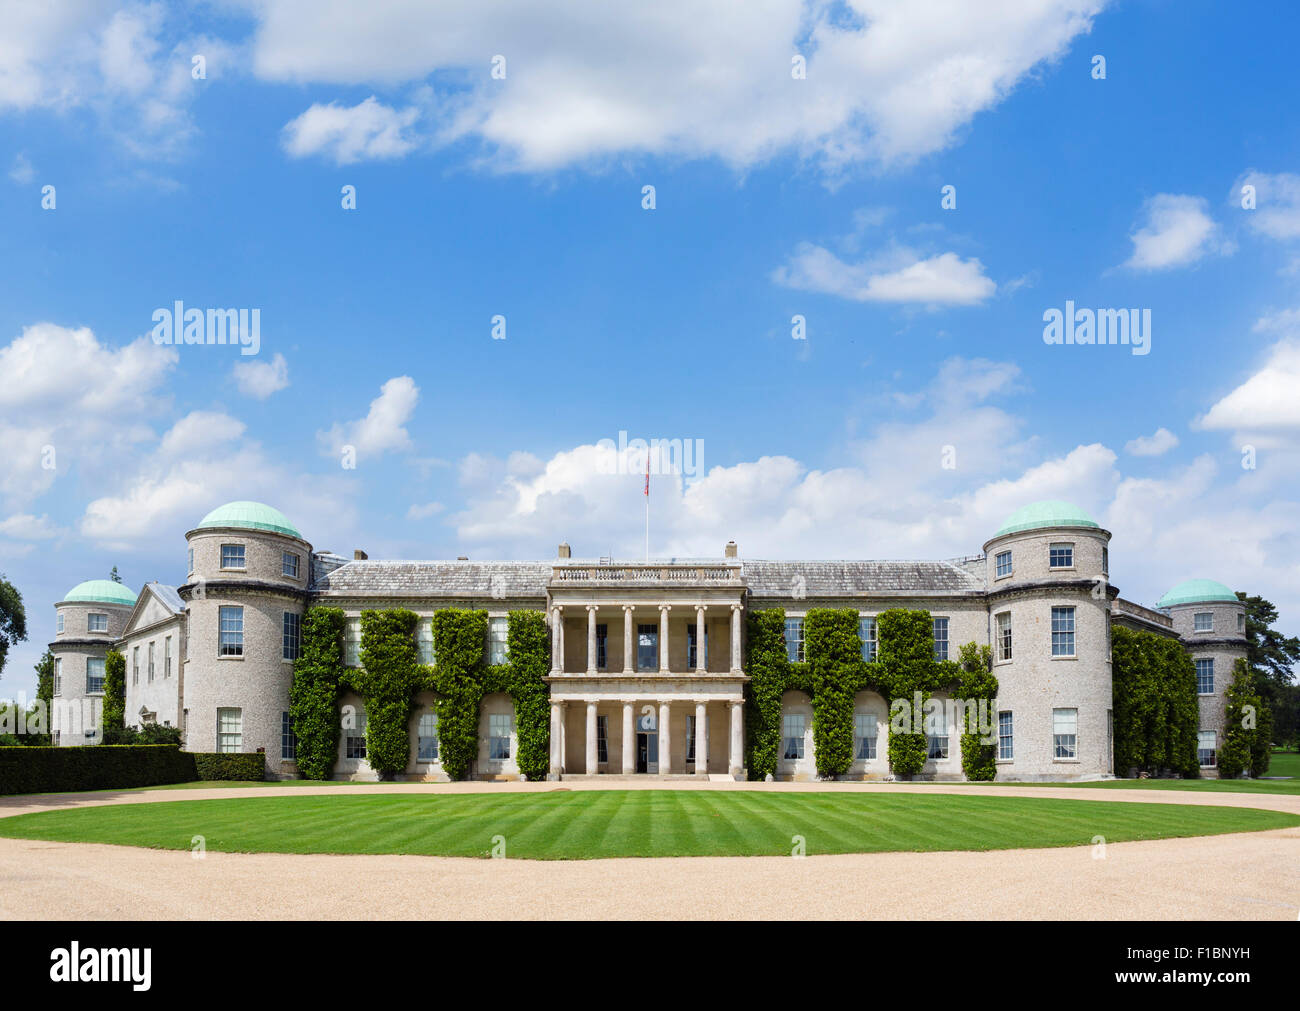 Goodwood House, West Sussex, England, UK Stockbild